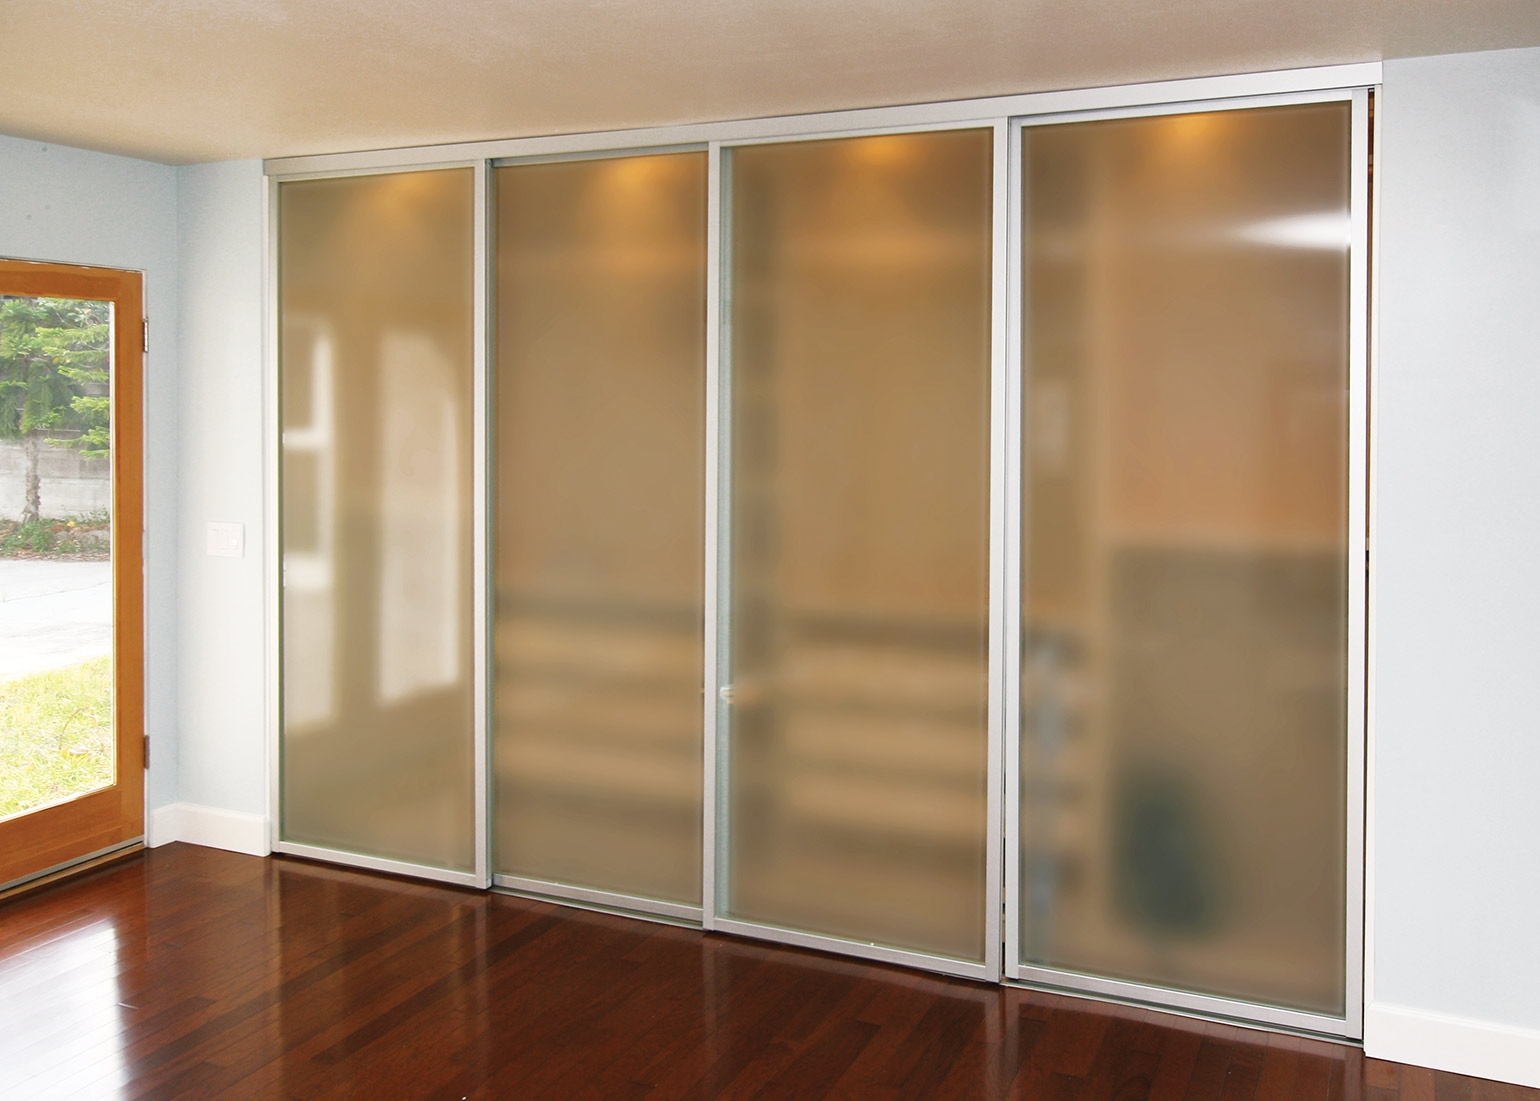 Sliding Closet Doors Opaque Glass1540 X 1101